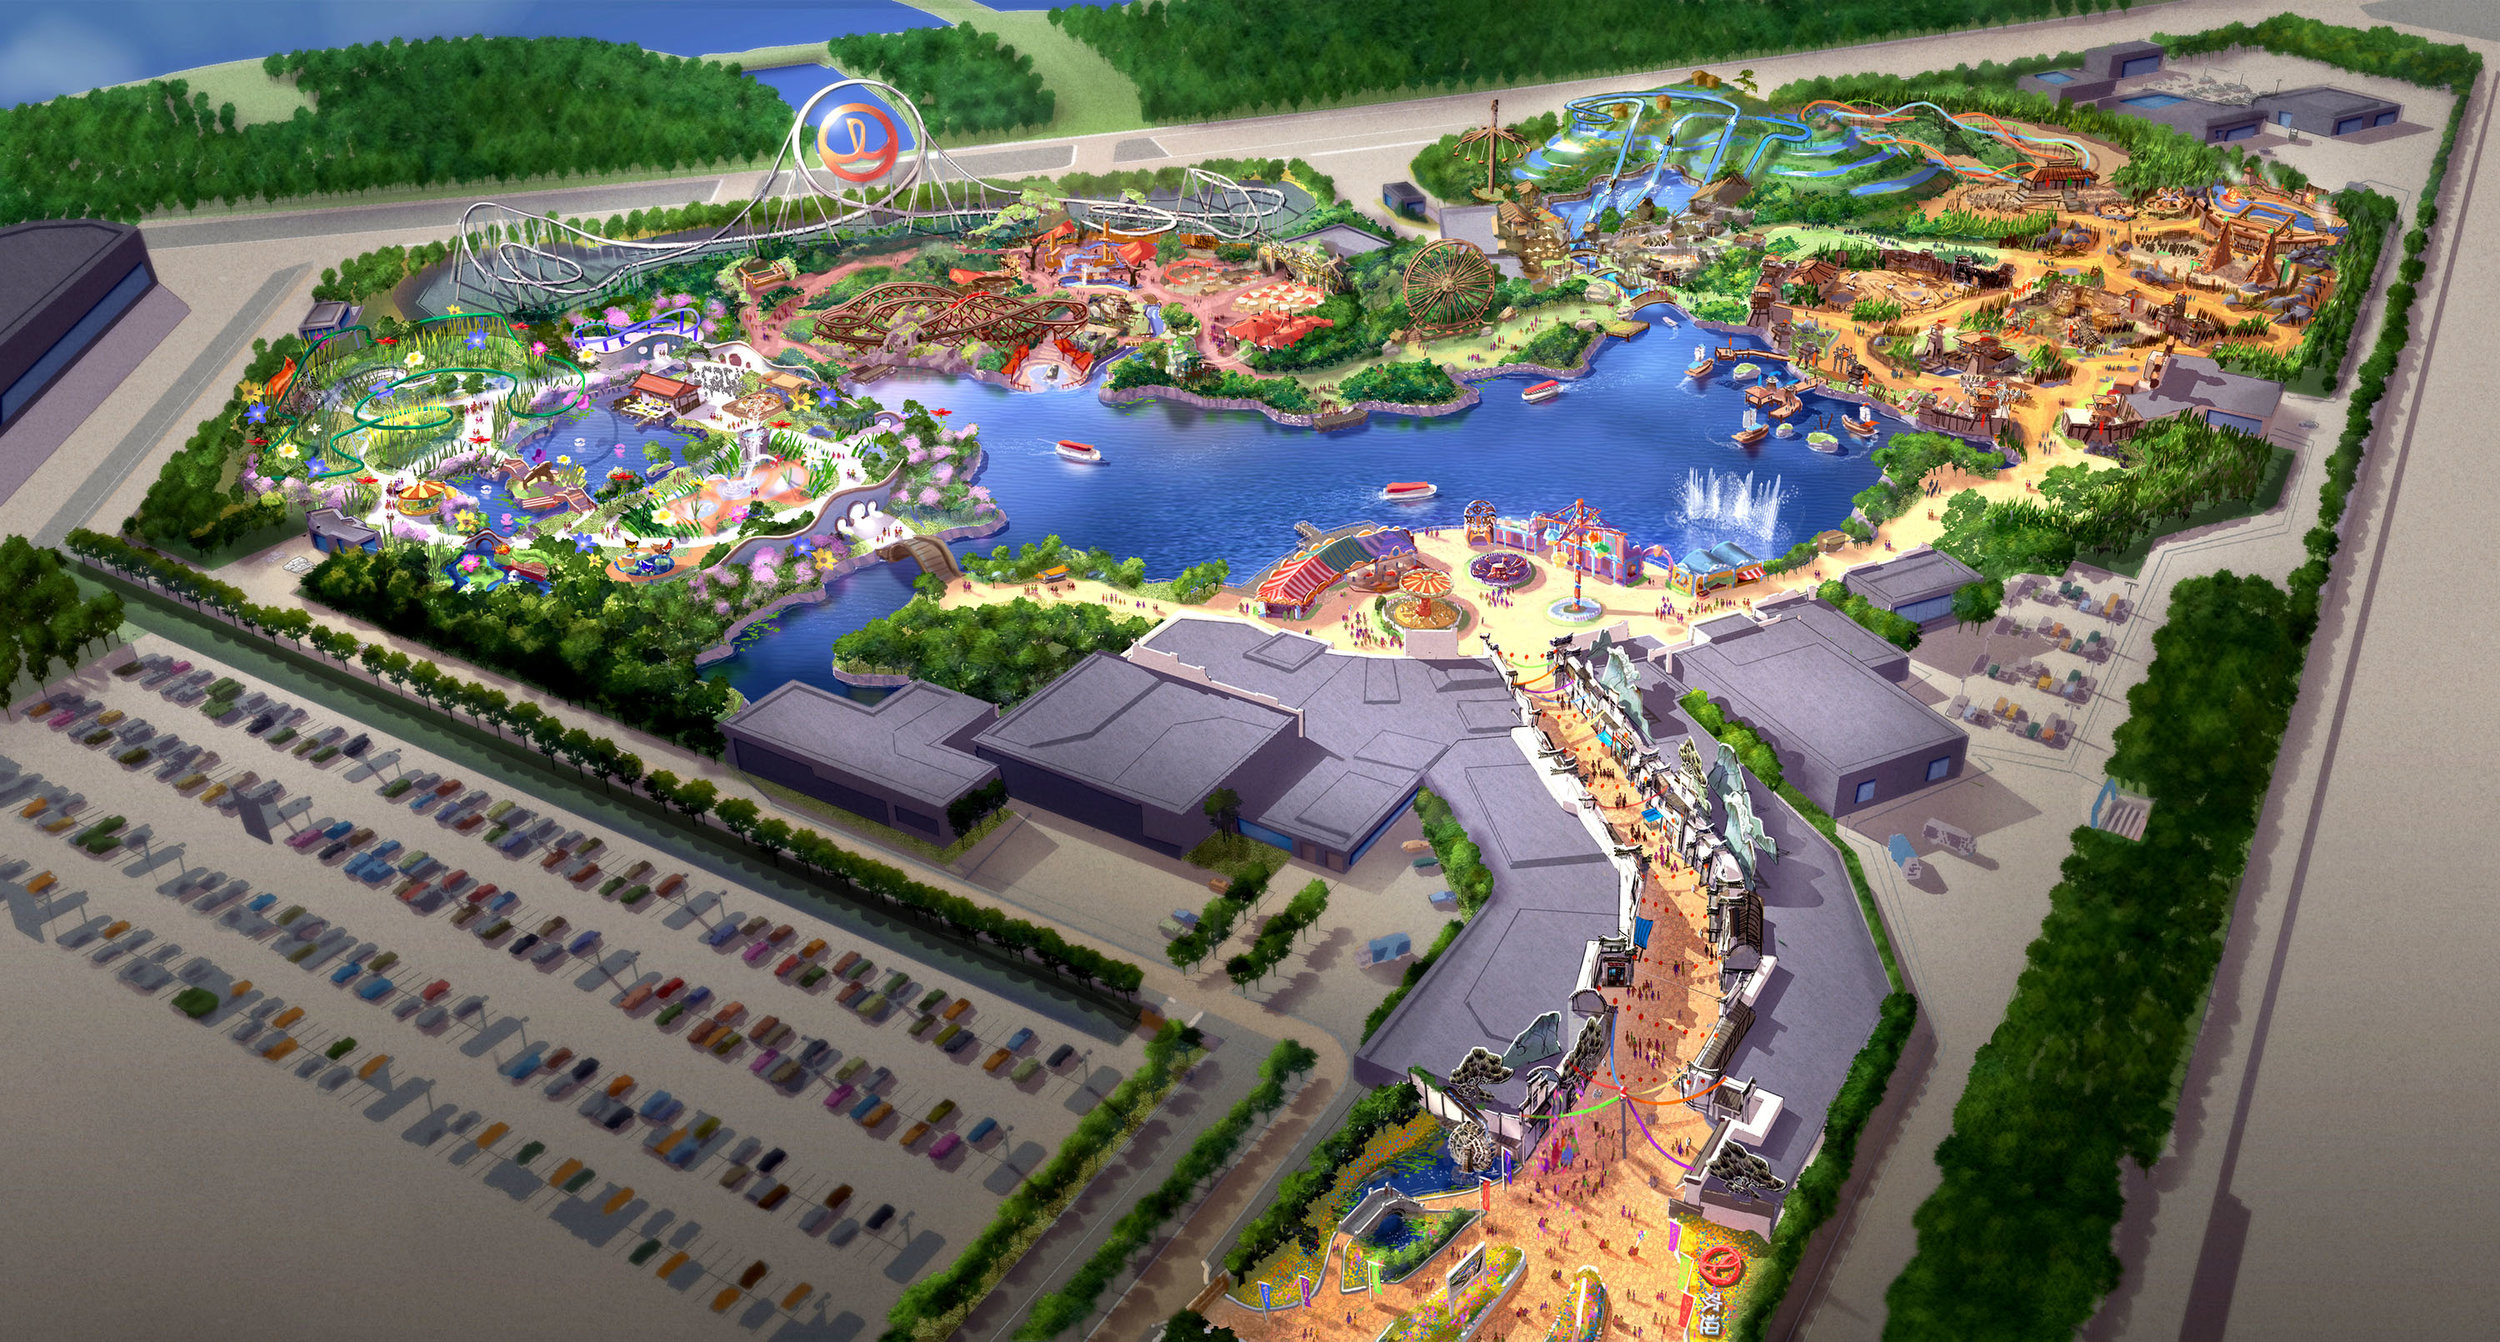 WANDA HEFEI THEME PARK <strong>| Complete design for a theme park resort in China</strong>